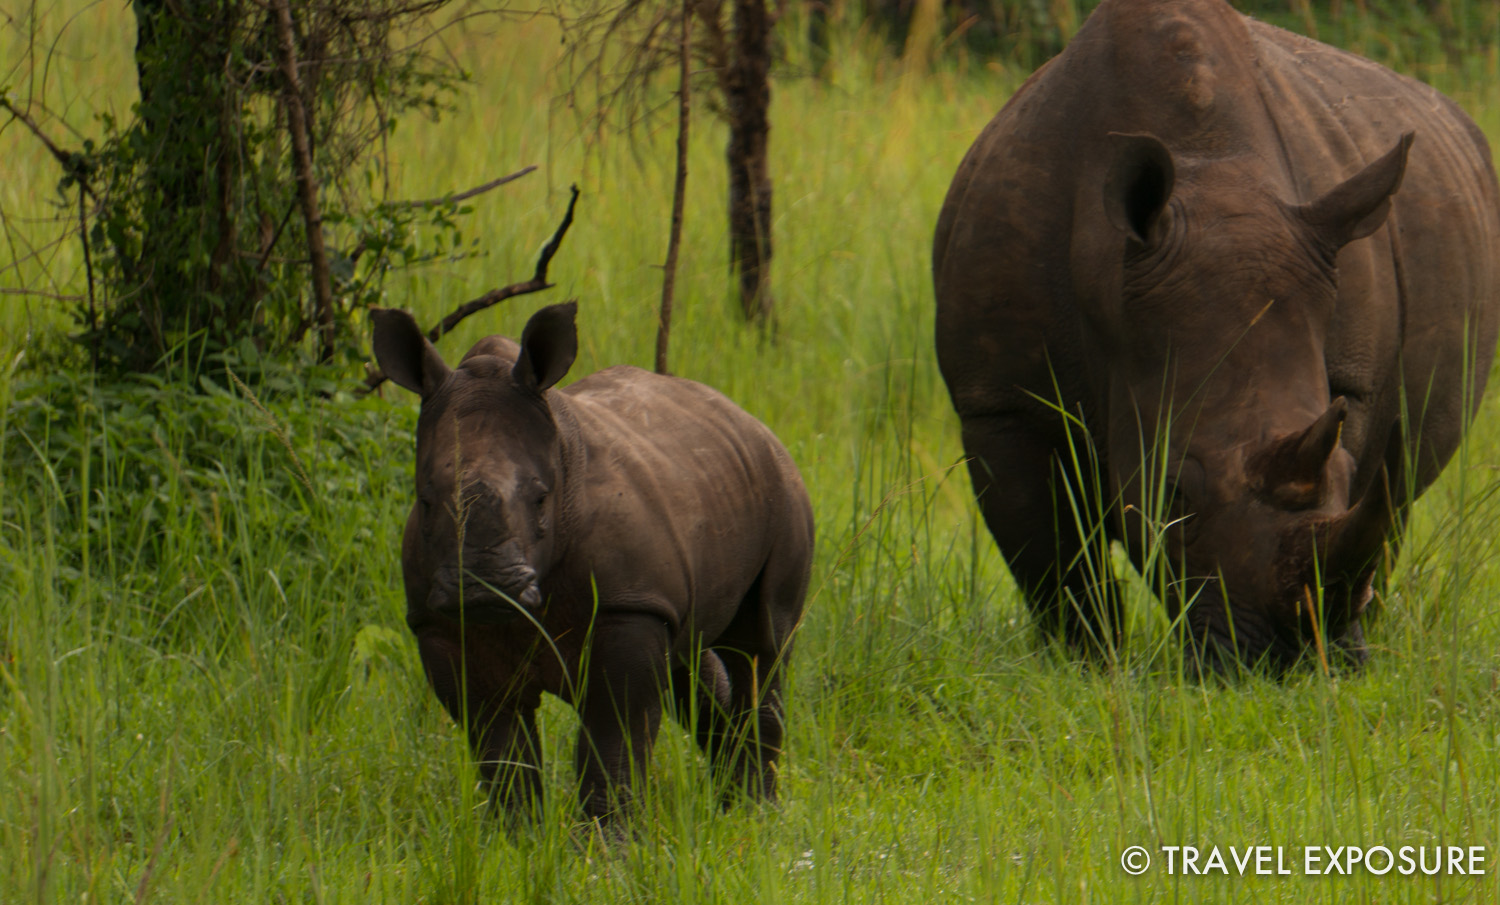 WEEK OF JUNE 23 A baby rhino grazes near its mother at the Ziwa Rhino Sanctuary near Nakitoma, Uganda.